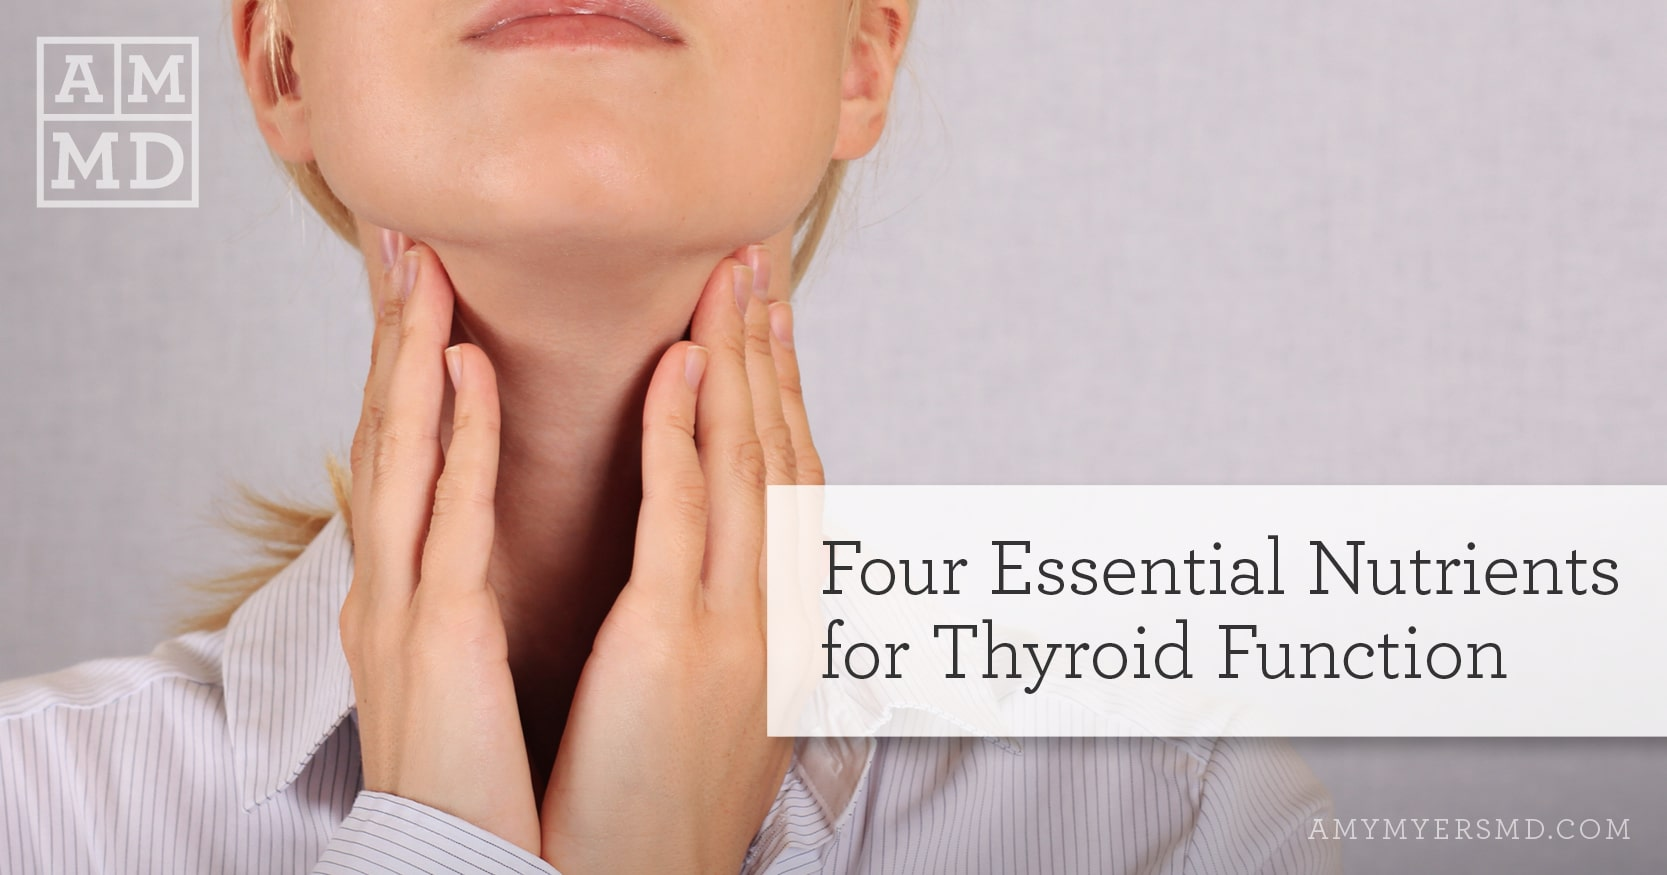 Thyroid Health Part VII: Four Essential Nutrients for Thyroid Function - A Woman Feeling the Sides of Her Neck - Featured Image - Amy Myers MD